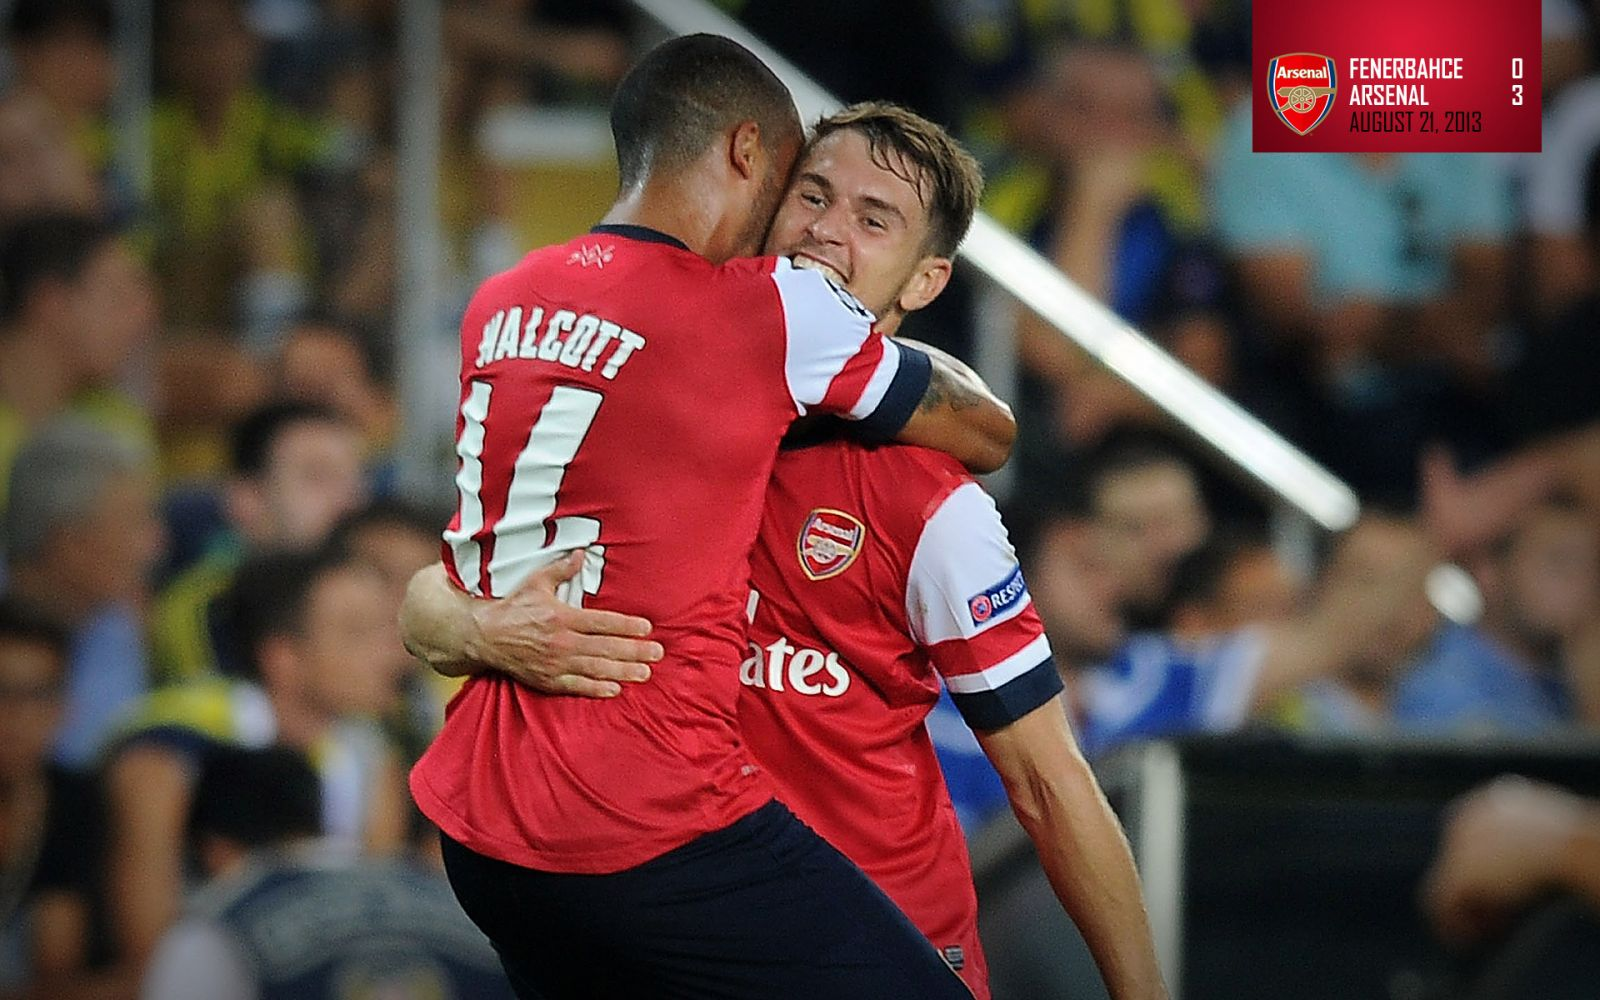 August 21, 2013 - Fenerbahce 0-3 Arsenal